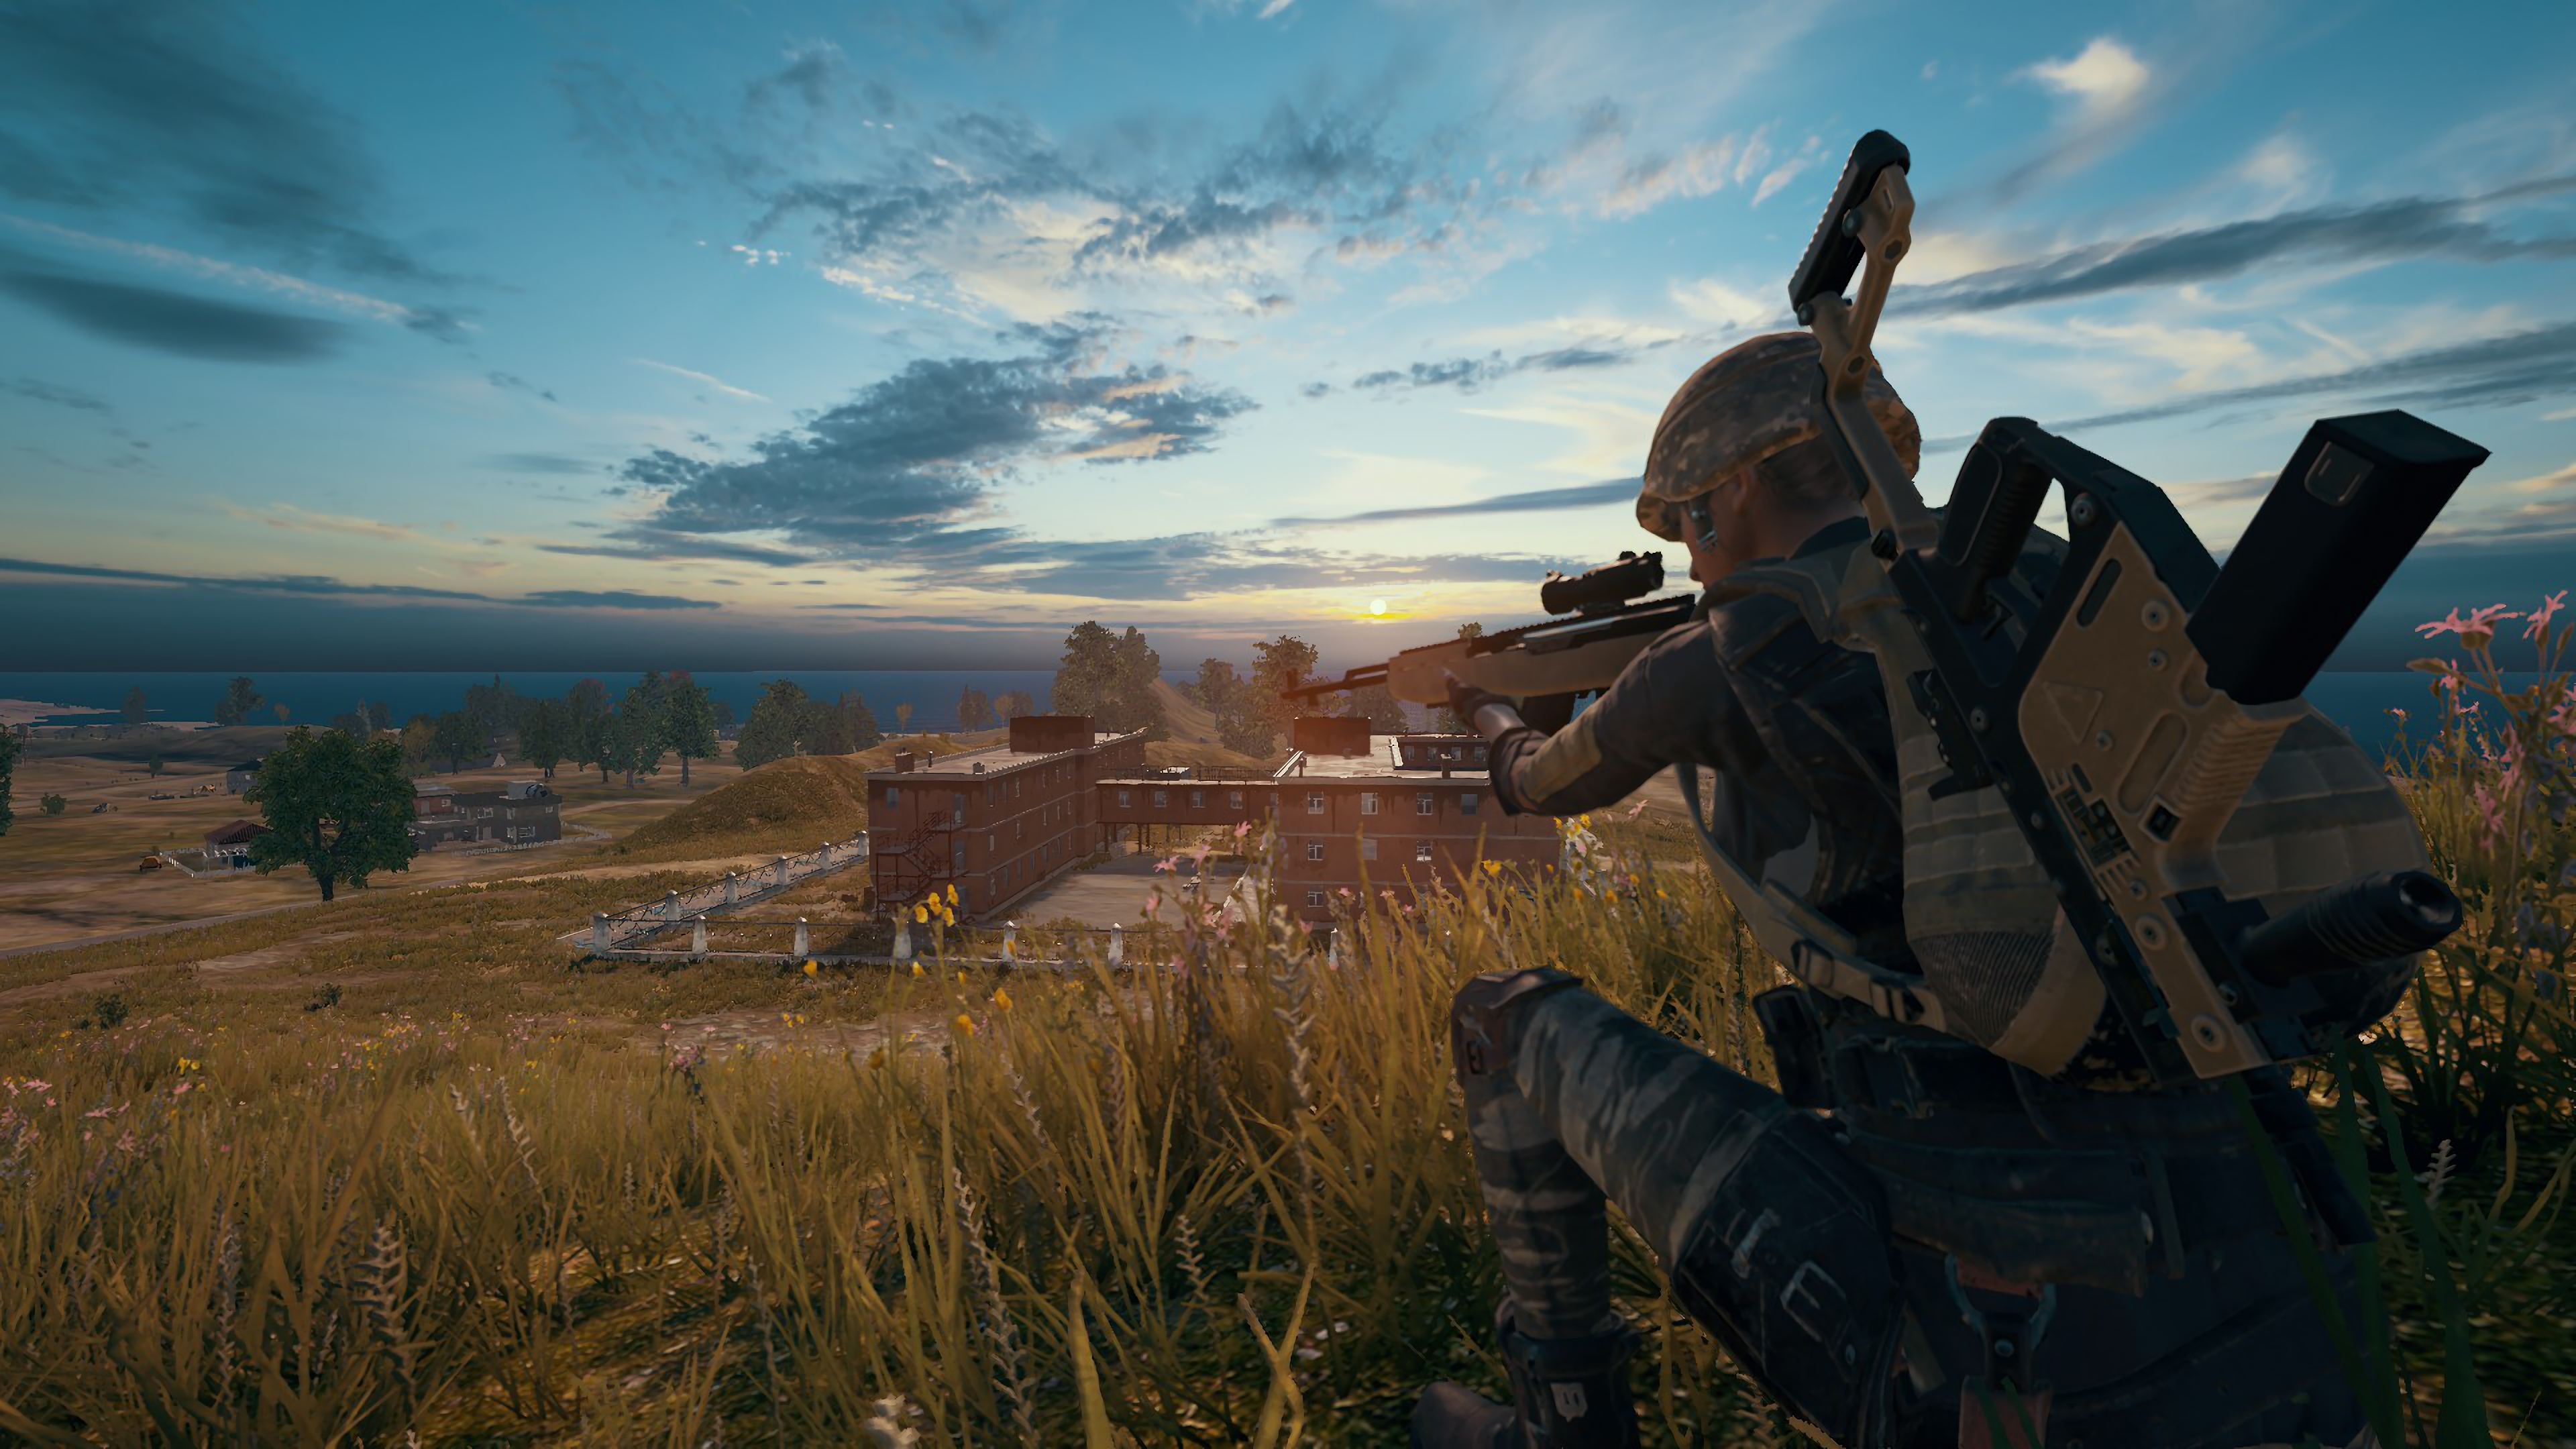 Pubg Wallpaper 4k Test Pubg By Jaxdesignz On Deviantart